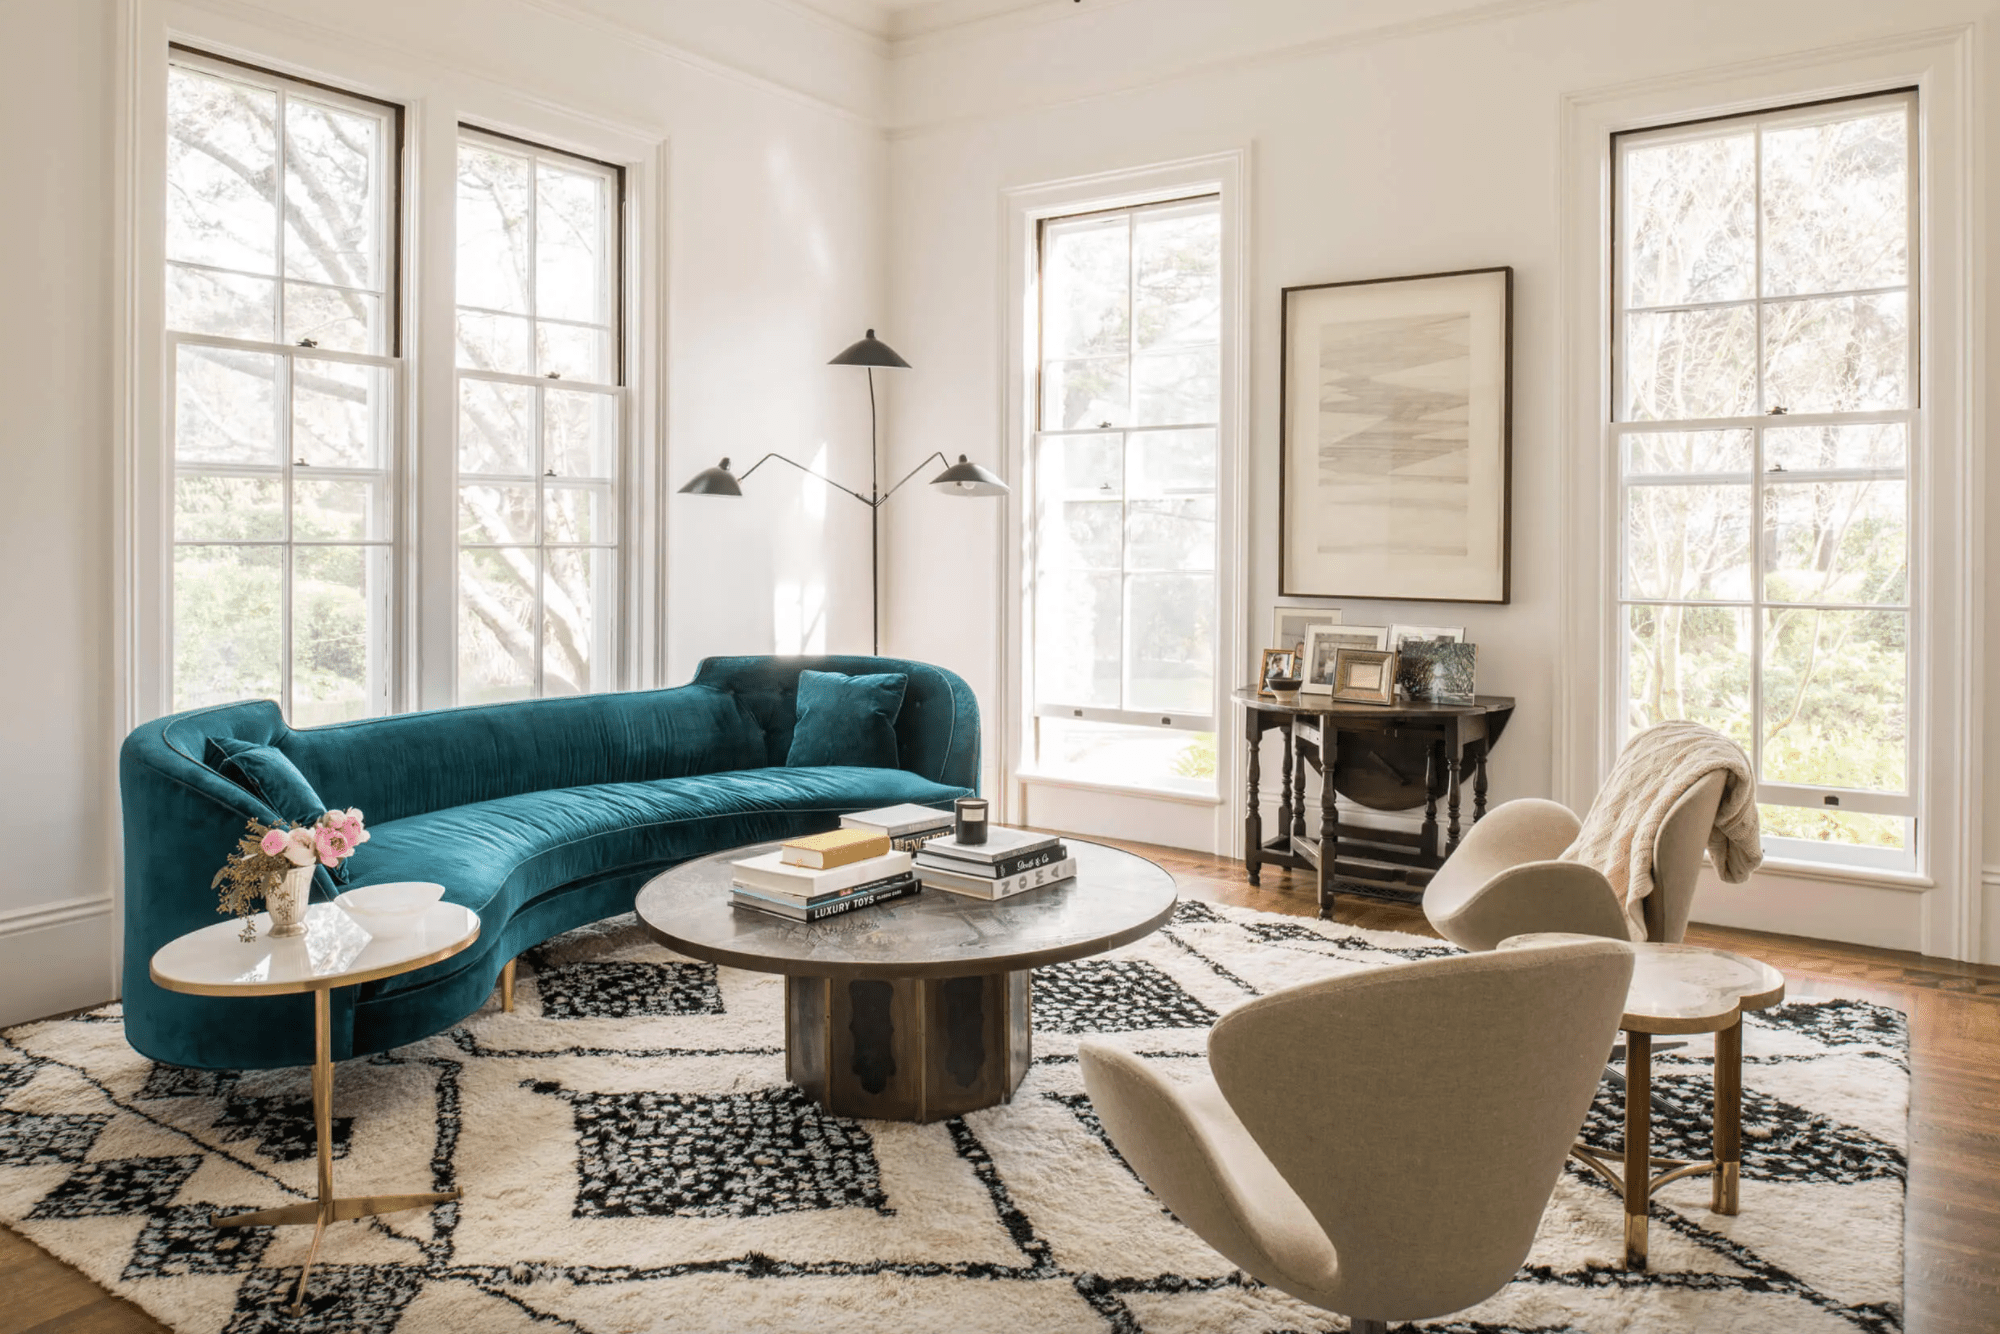 Soft living room with velvet couch and plush rug.